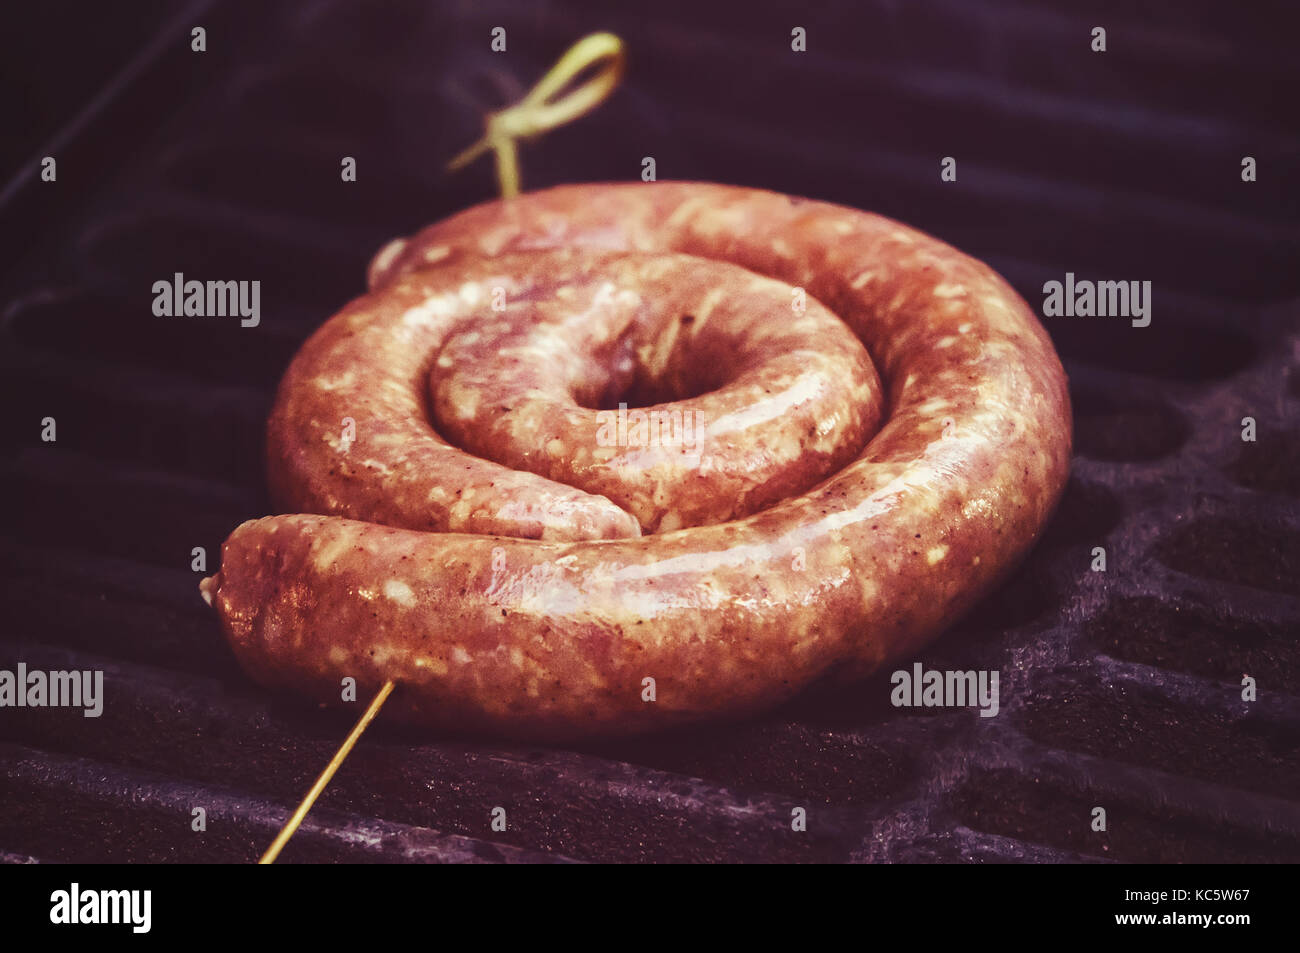 raw sausage links prior to cooking on a hot charcoal grill. fried German sausages. National cuisine. Ingredients - Stock Image